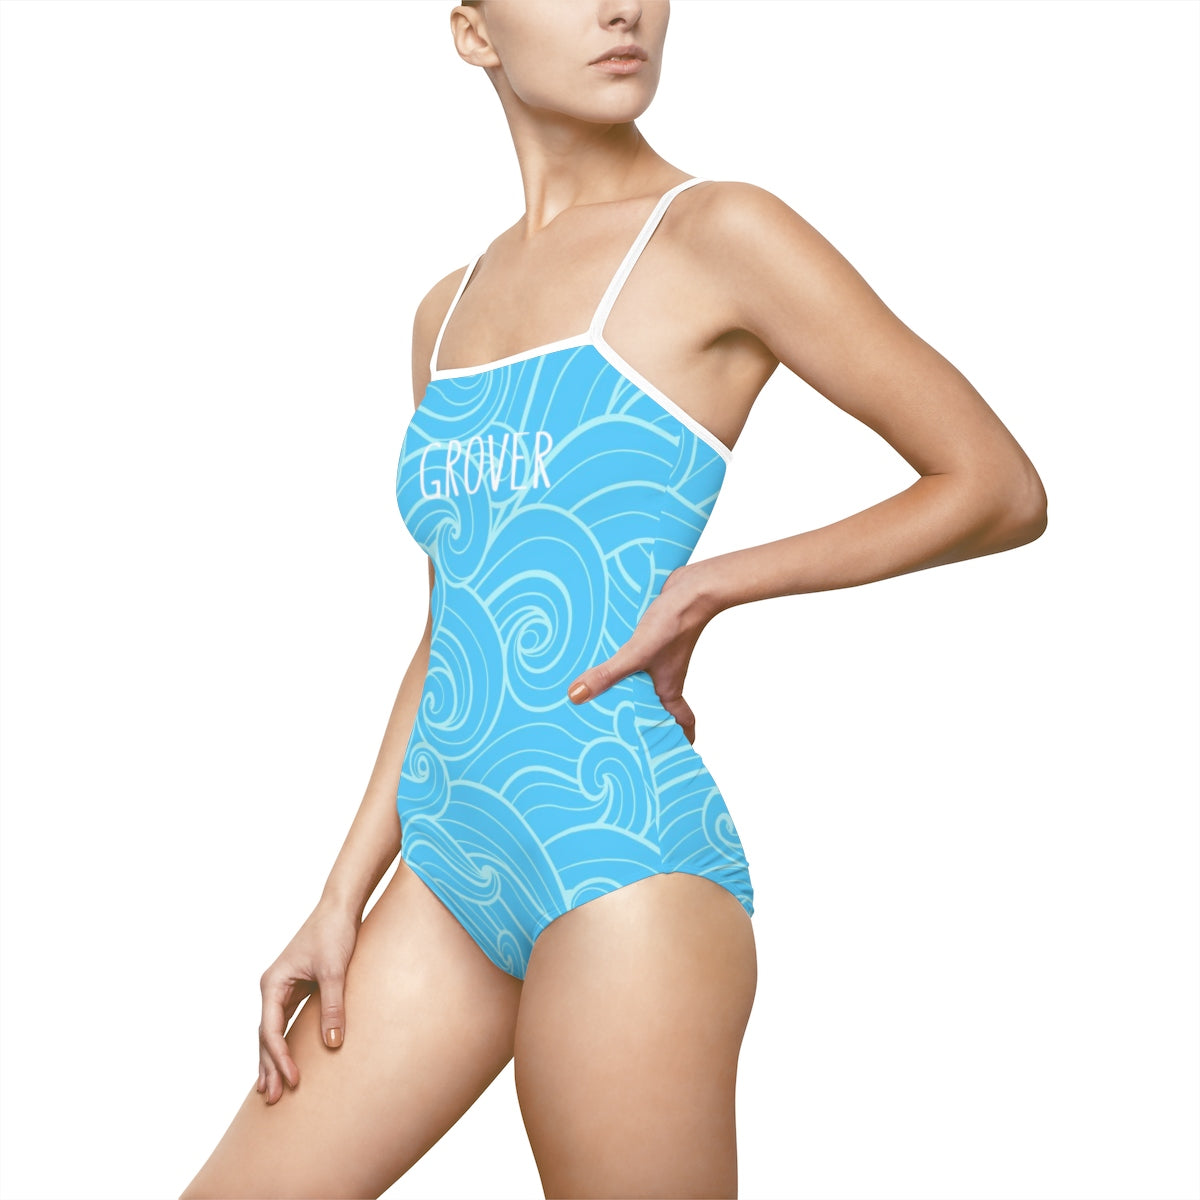 Summer Breeze Grover Ladies One-Piece Bathing Suit